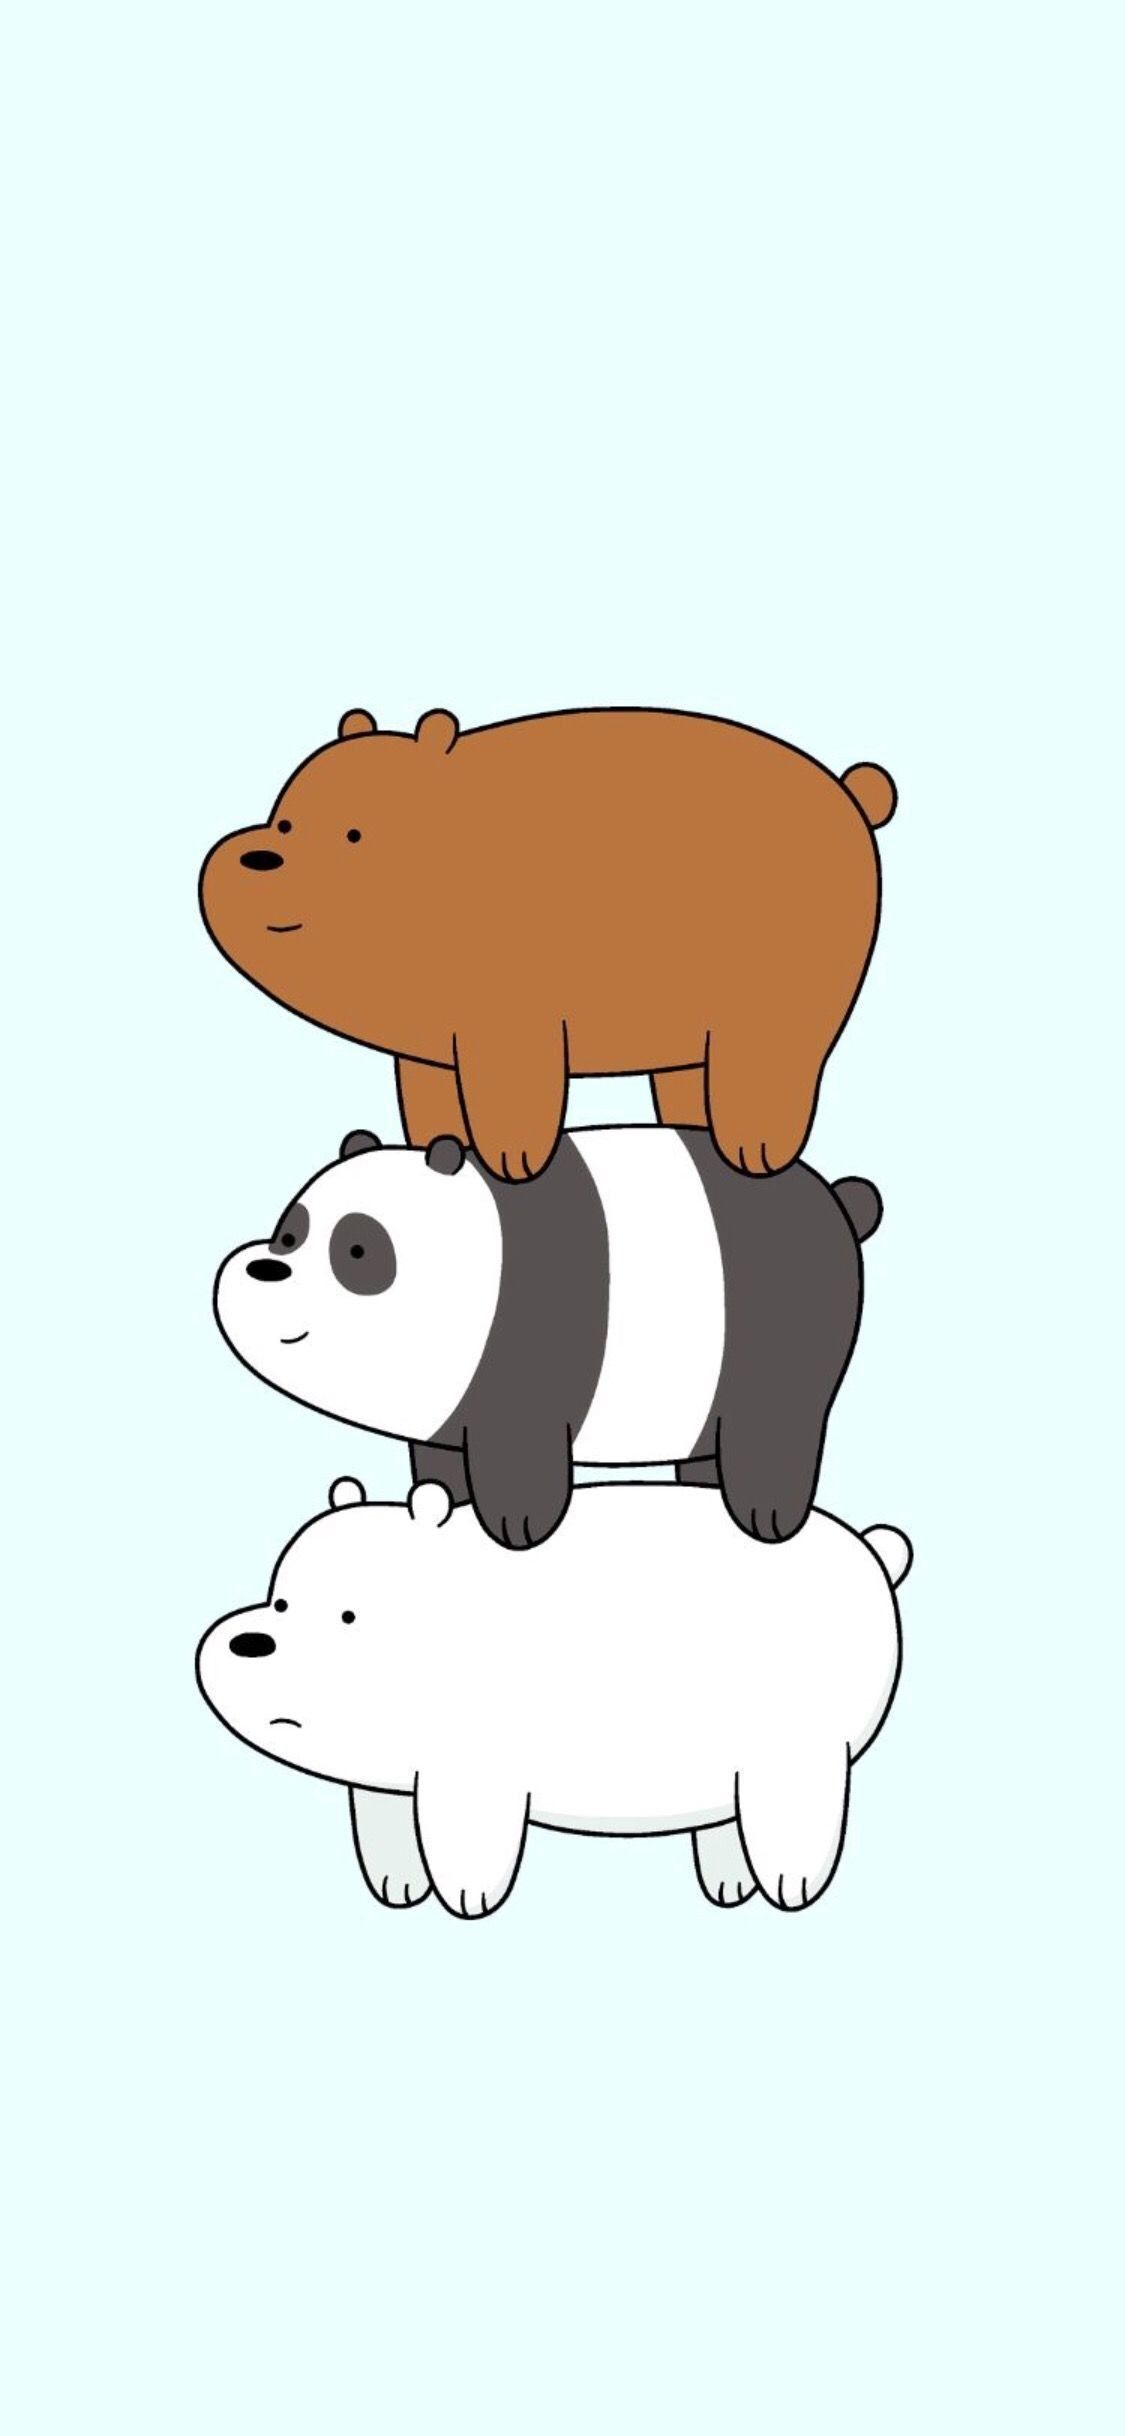 1125x2436 We Bare Bears Wallpaper For IPhone X ¢